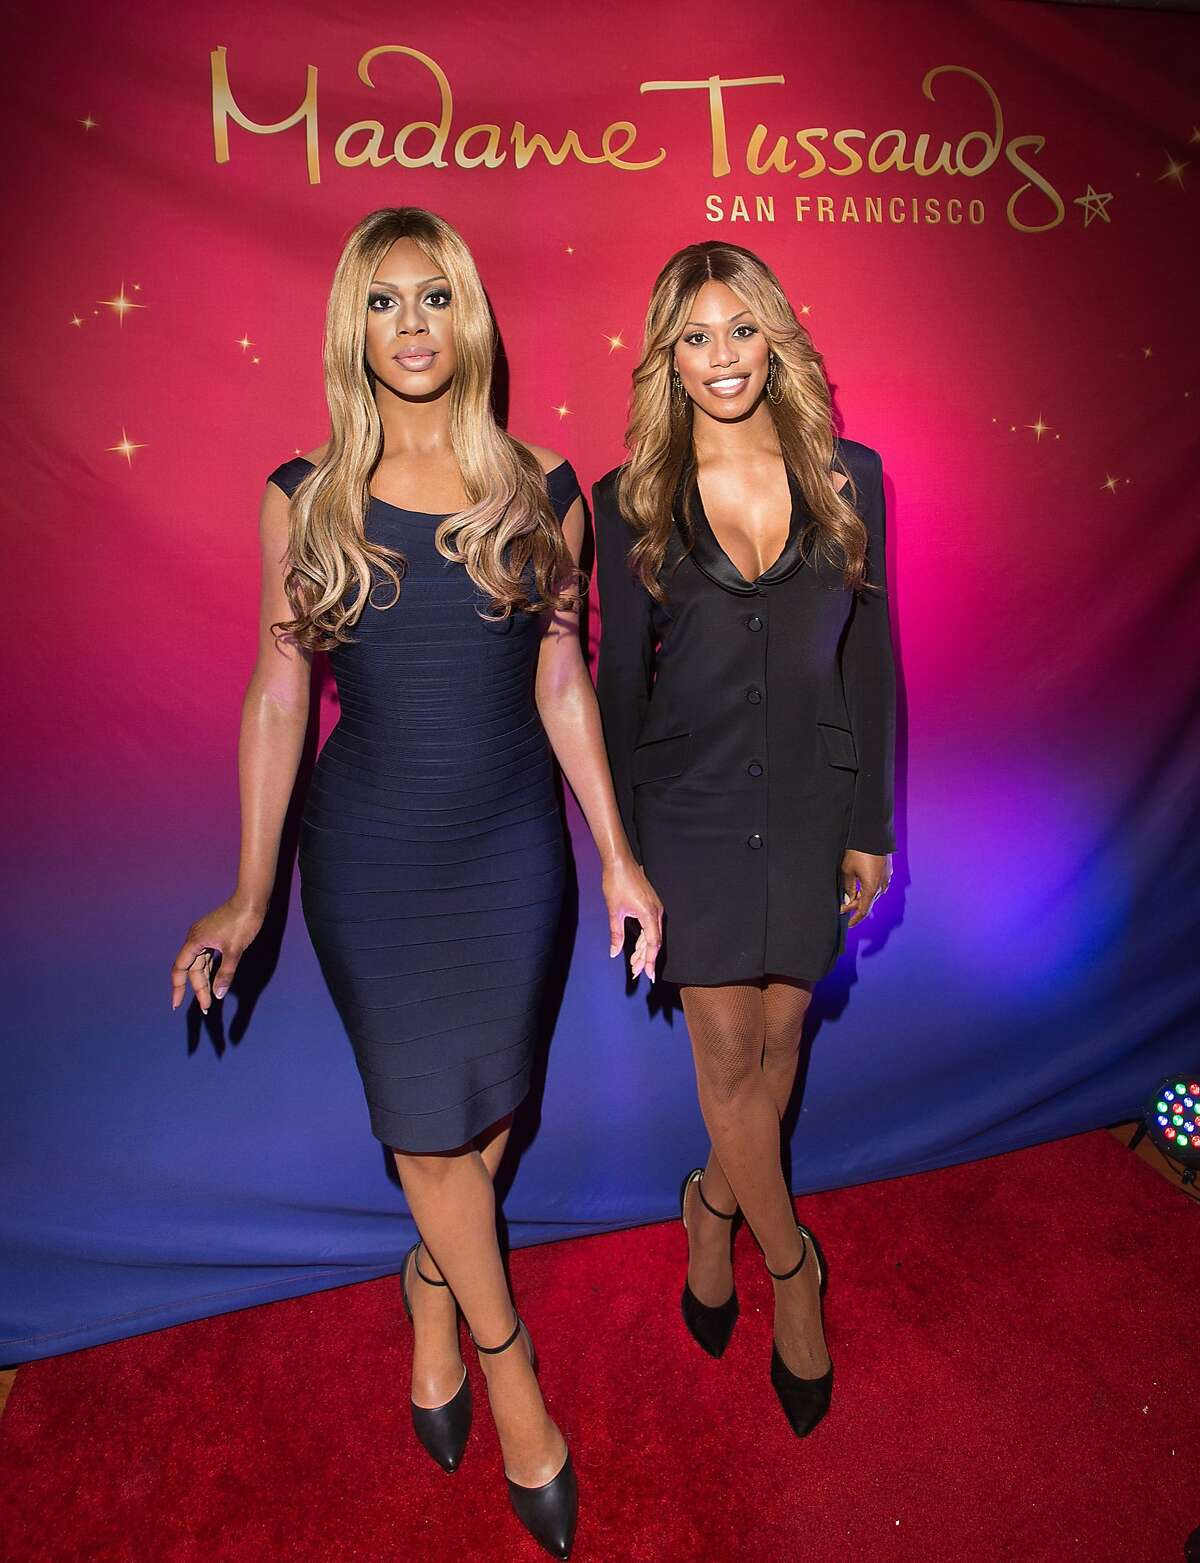 In this image provided by Madame Tussauds, actress Laverne Cox, right, unveils her wax figure on Friday, June 26, 2015, in San Francisco. Cox, who stars in the Netflix series